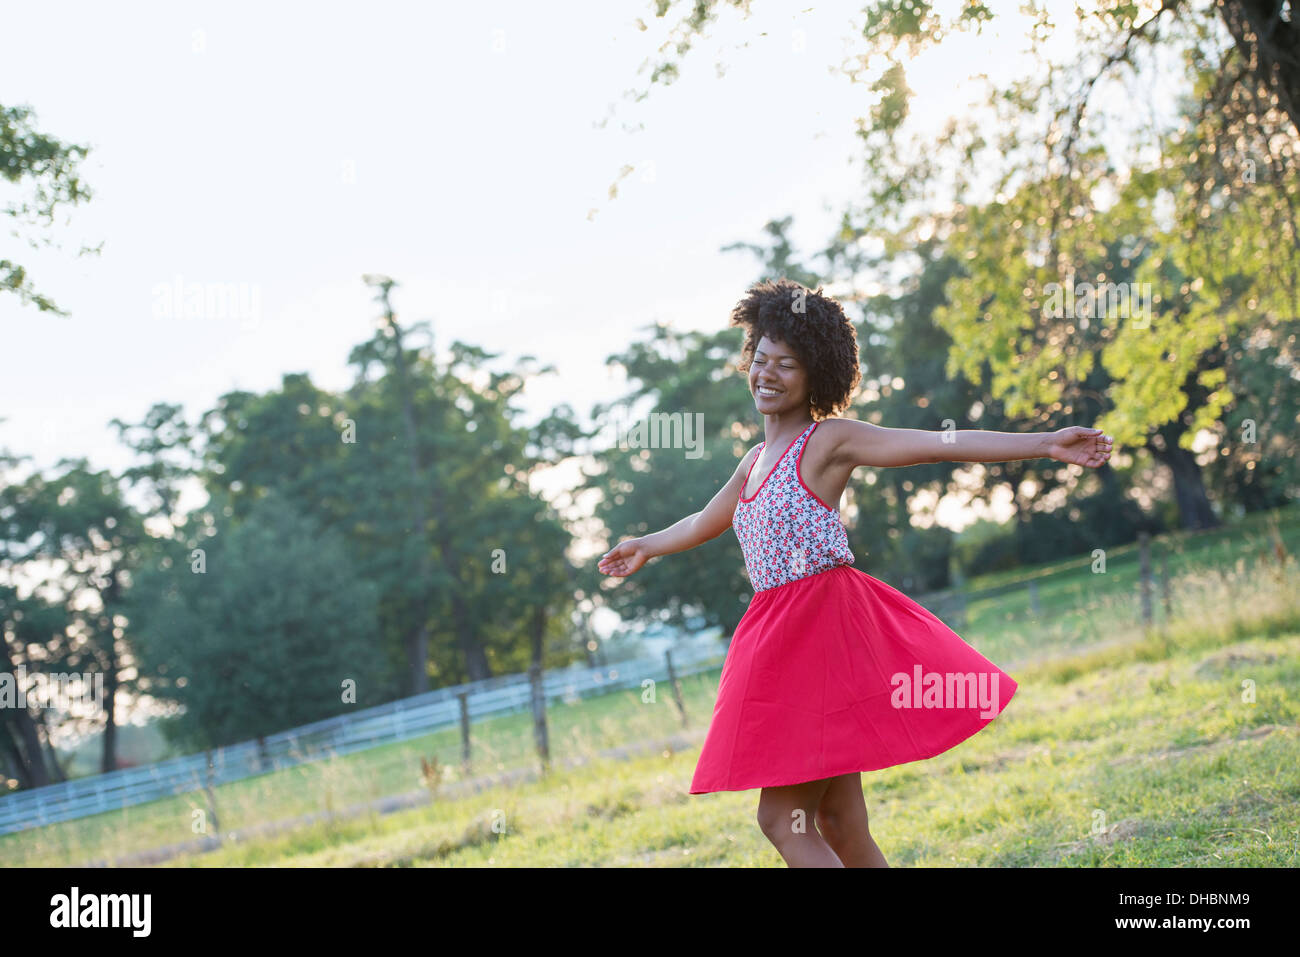 A woman in a red skirt, whirling around in the open air, with her arms outstretched. - Stock Image